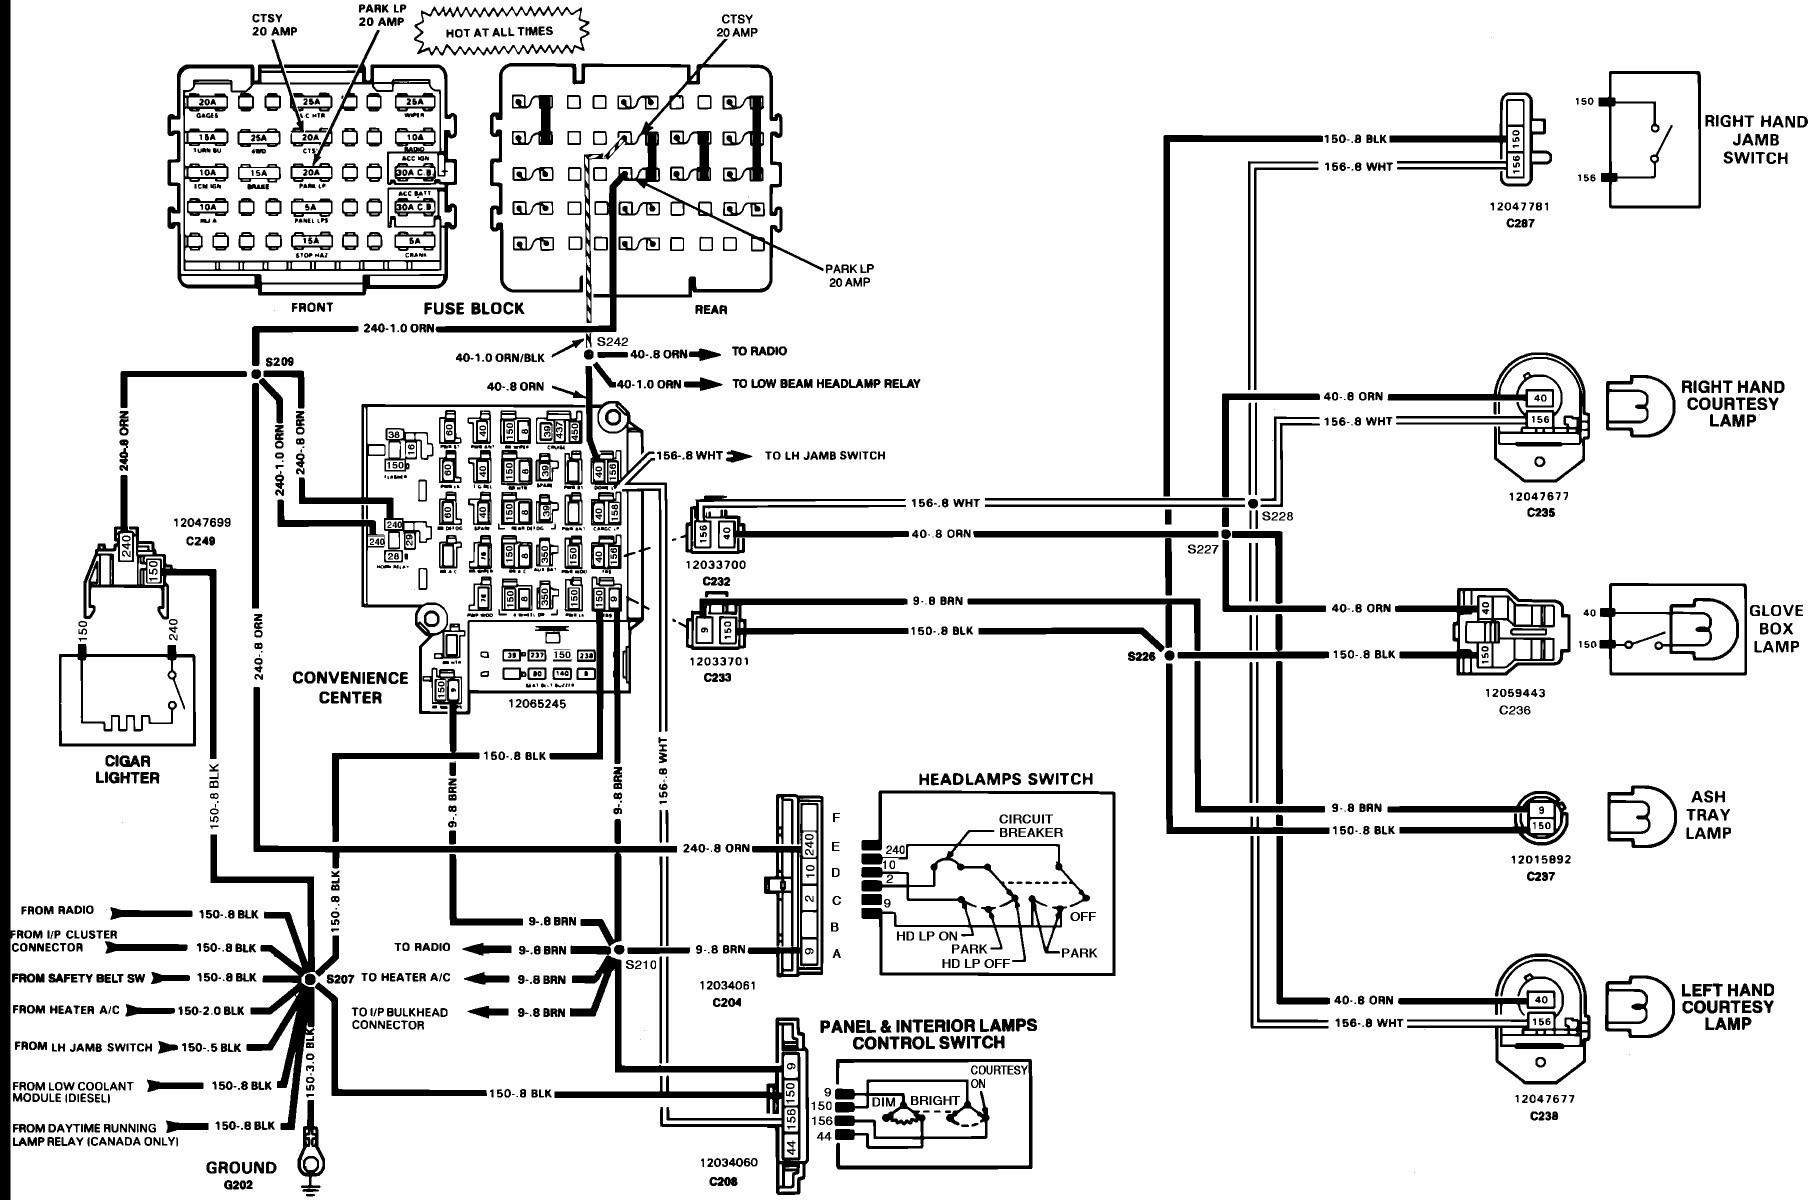 Arcoaire Furnace Wiring Diagram | Wiring Liry on furnace blower wiring diagram, gas furnace diagram, york furnace diagram, gibson furnace diagram, intertherm furnace diagram, honeywell furnace diagram, coleman furnace diagram, lennox furnace diagram, carrier furnace diagram, airquest furnace diagram, whirlpool furnace diagram, tappan furnace diagram, frigidaire furnace diagram, janitrol furnace diagram, rheem furnace diagram, peerless furnace diagram, nordyne furnace diagram, bryant furnace diagram, trane furnace diagram, day & night furnace diagram,